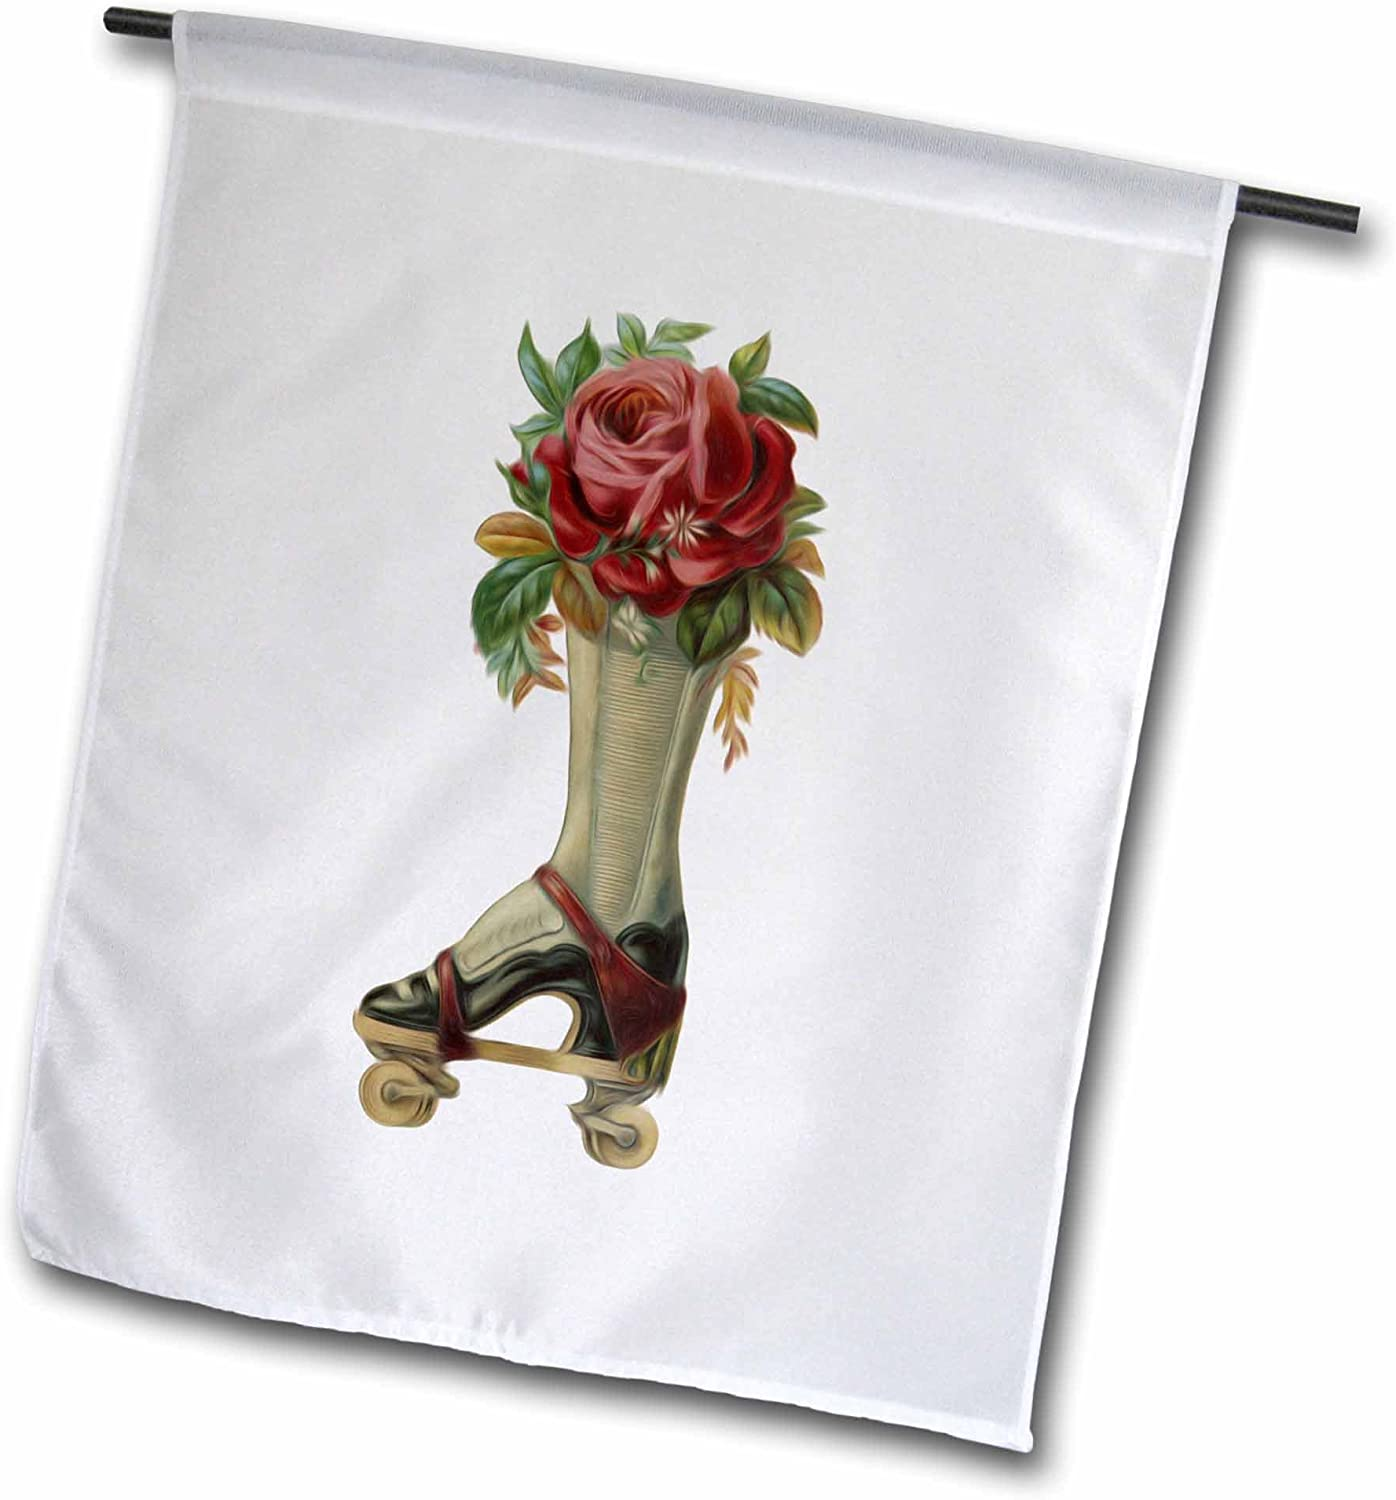 3dRose fl_104671_1 Vintage Steampunk Victorian Lady Boot Roller Skate with Red Rose Bouquet Garden Flag, 12 by 18-Inch